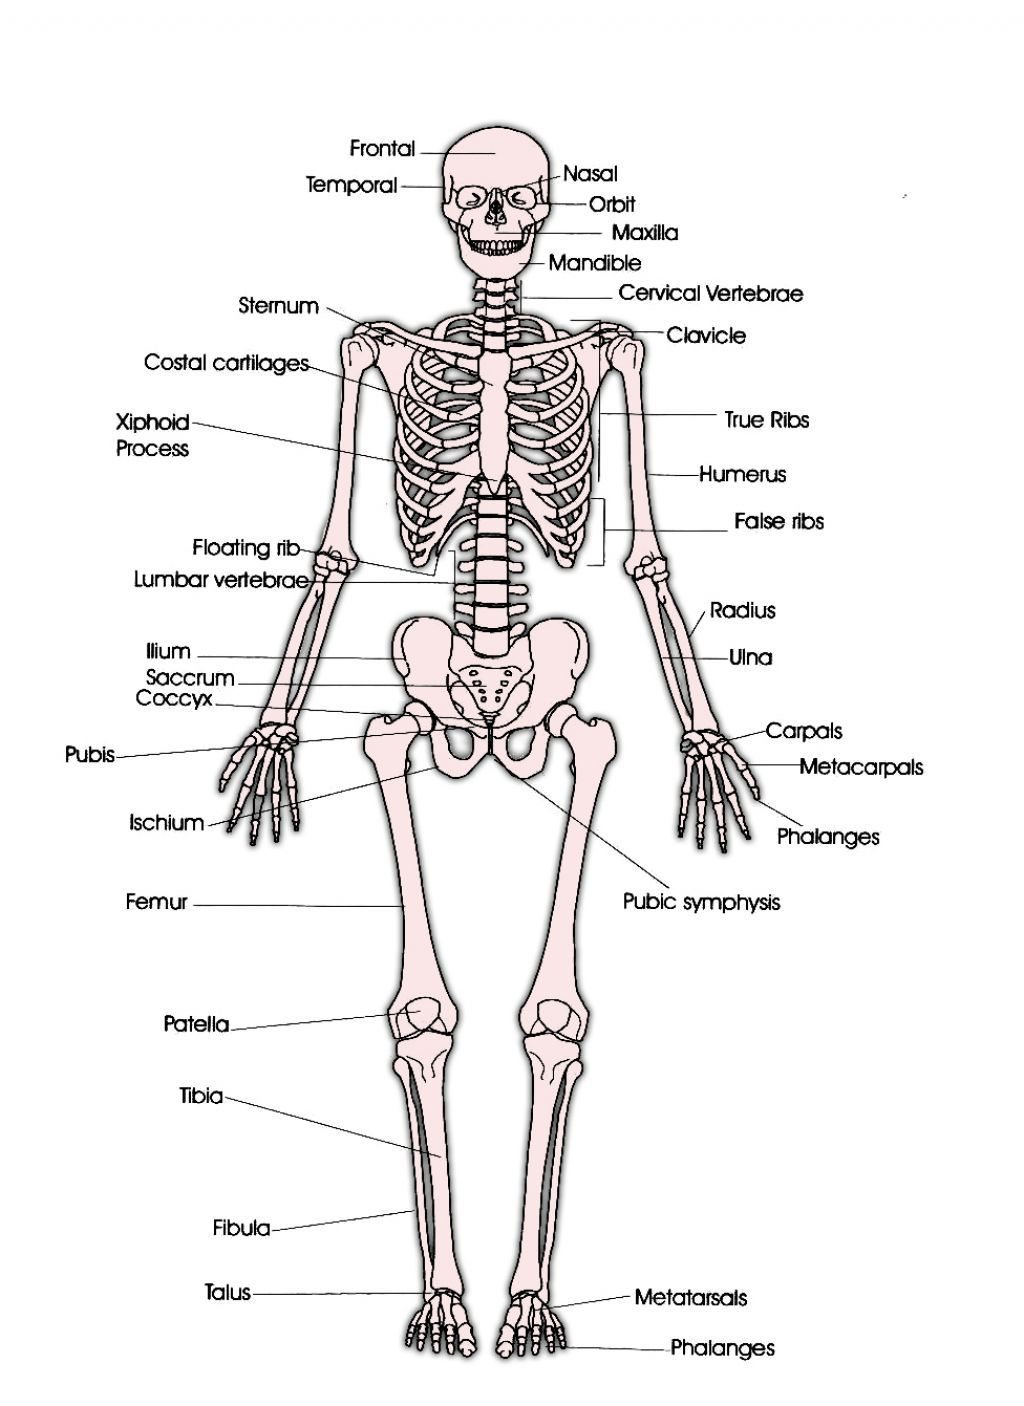 medium resolution of unlabeled diagram of the human skeleton unlabeled diagram of the human skeleton skeletal system unlabeled